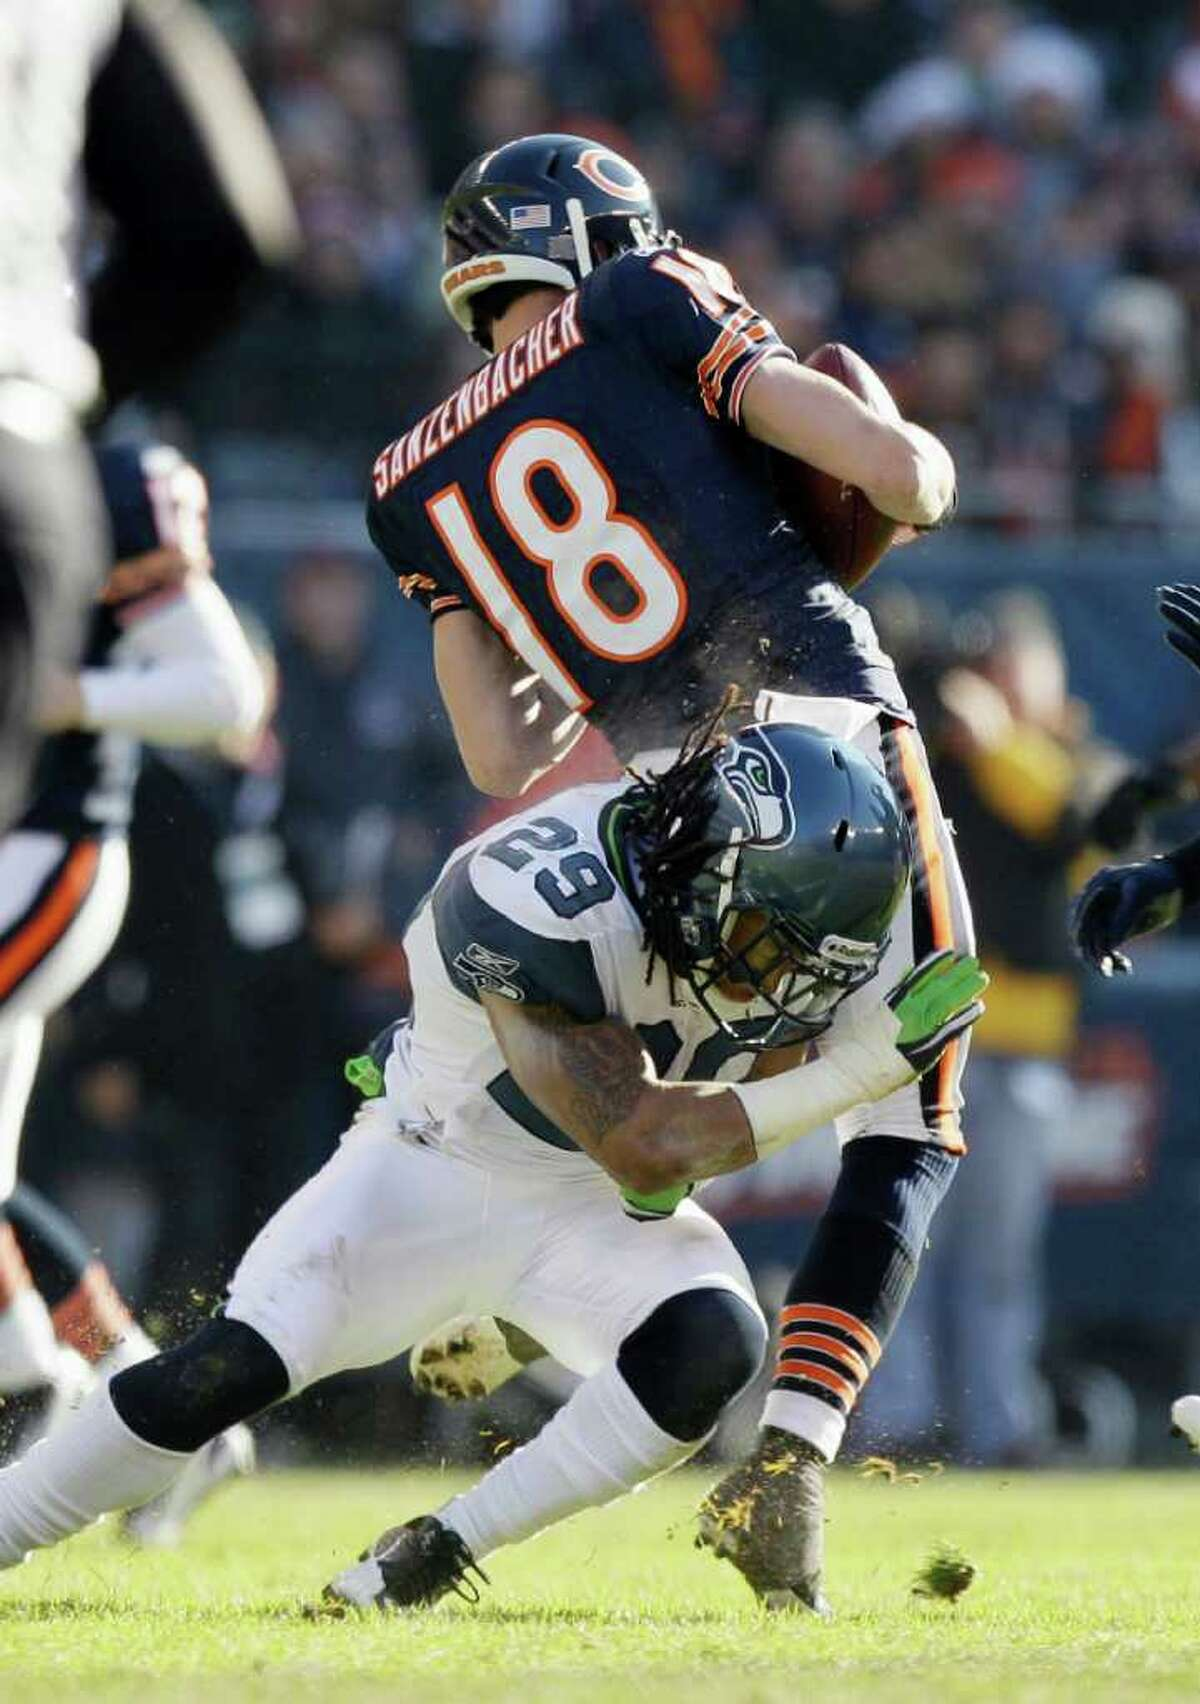 Seattle Seahawks safety Earl Thomas (29) tackles Chicago Bears wide receiver Dane Sanzenbacher (18) in the first half of an NFL football game in Chicago, Sunday, Dec. 18, 2011.